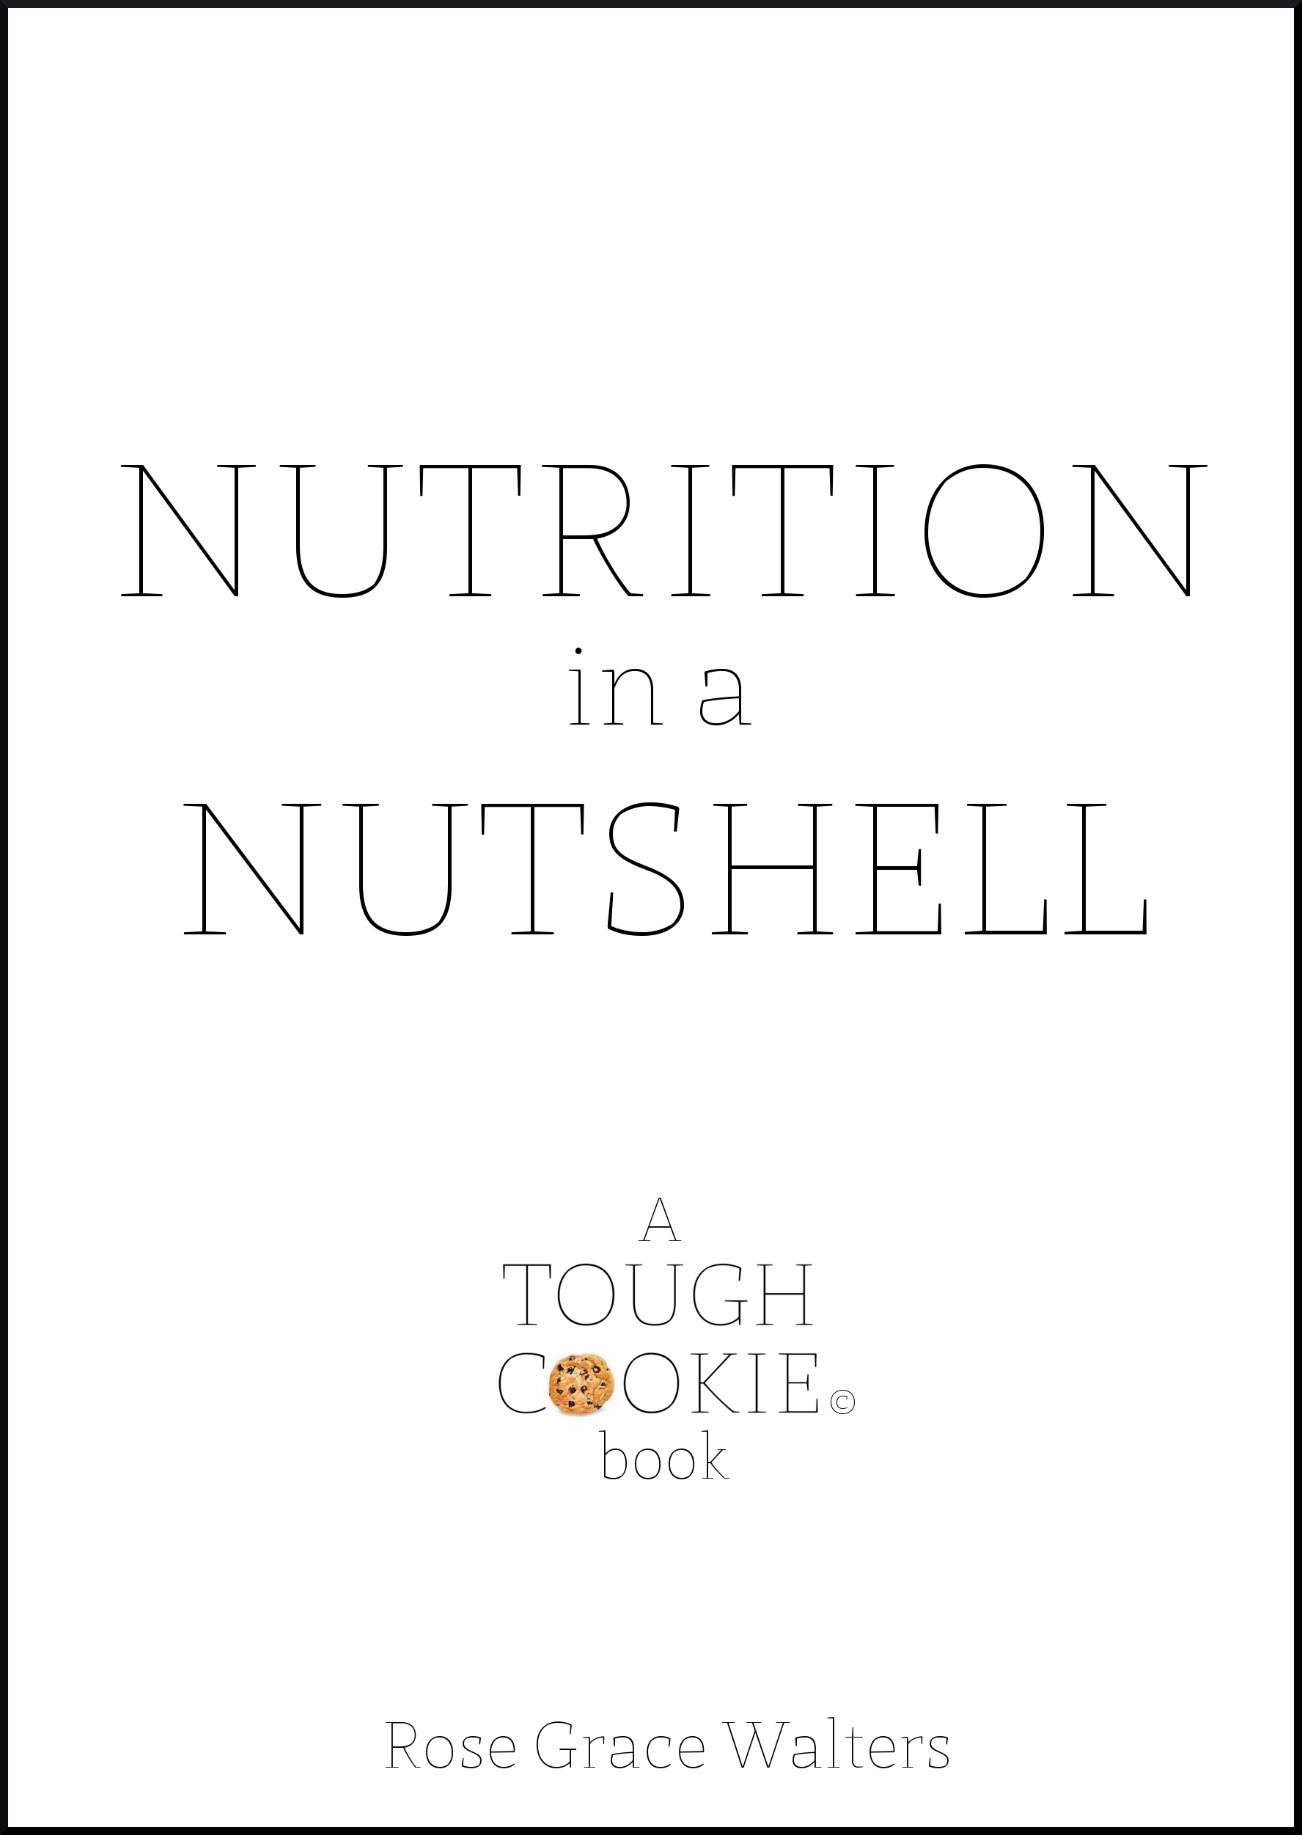 NUTRITION BOOK WITH BORDER